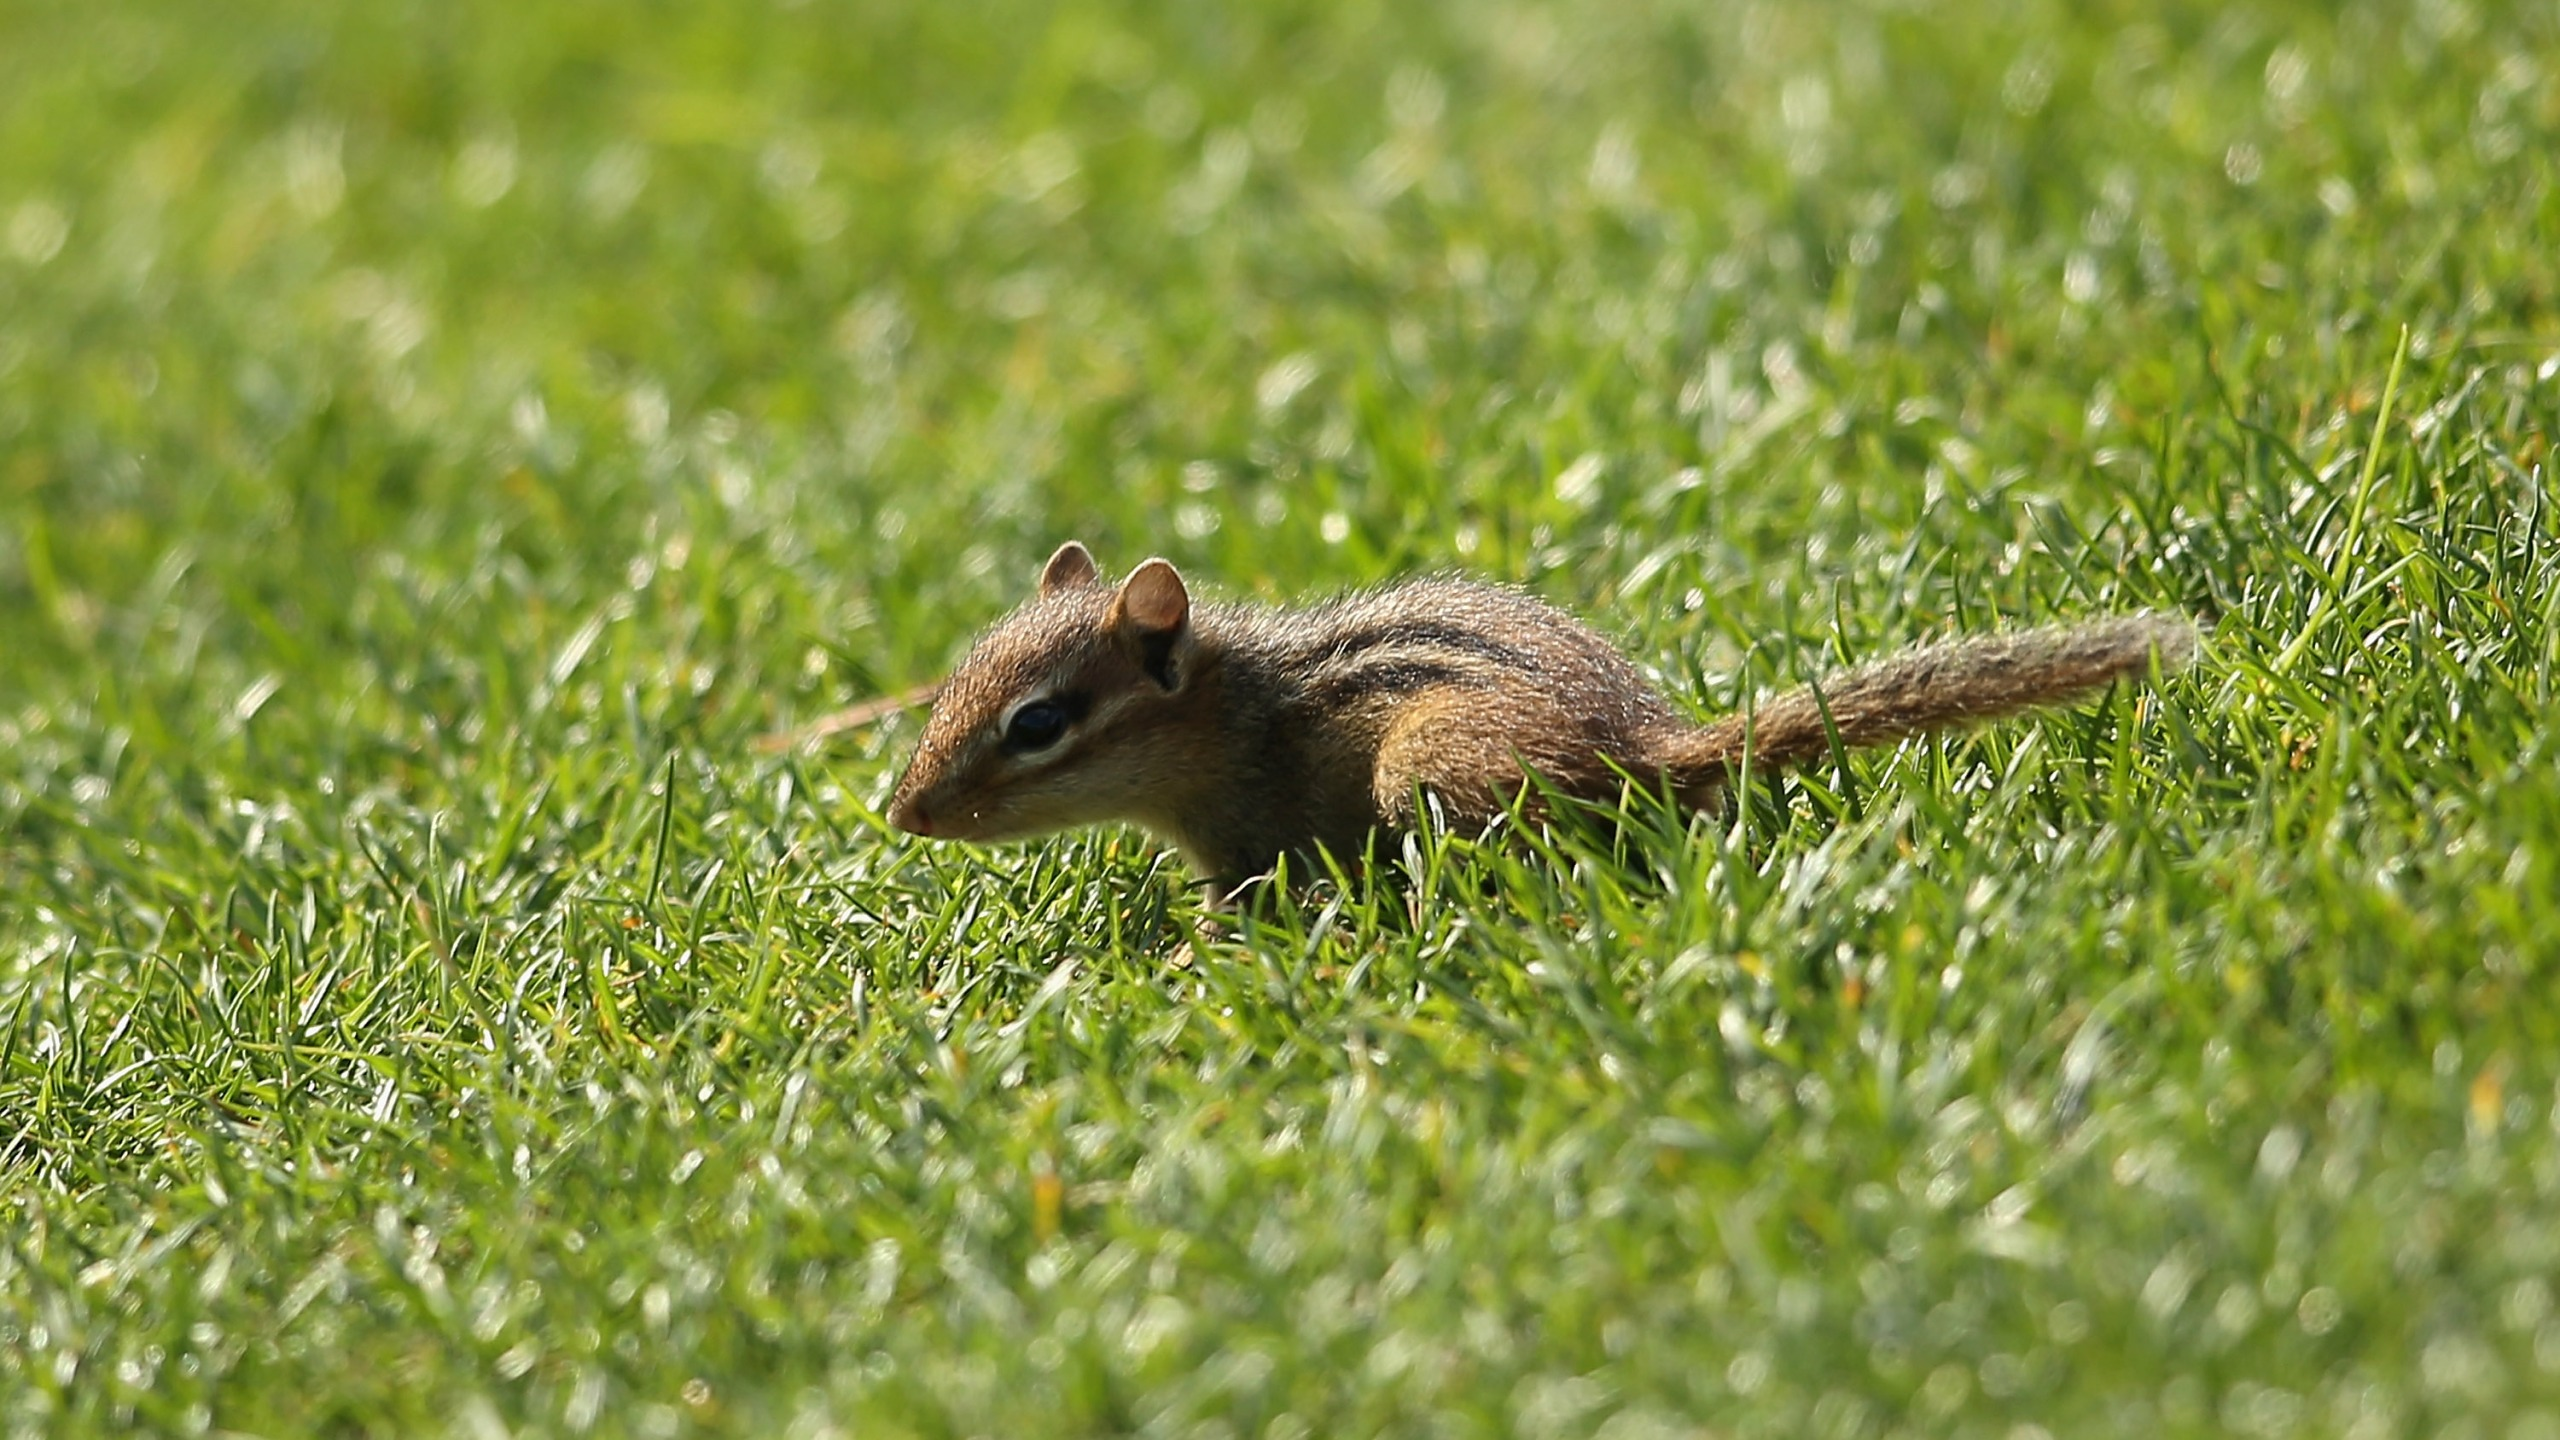 A chipmunk crosses is seen in Charlotte, North Carolina. (Richard Heathcote/Getty Images)